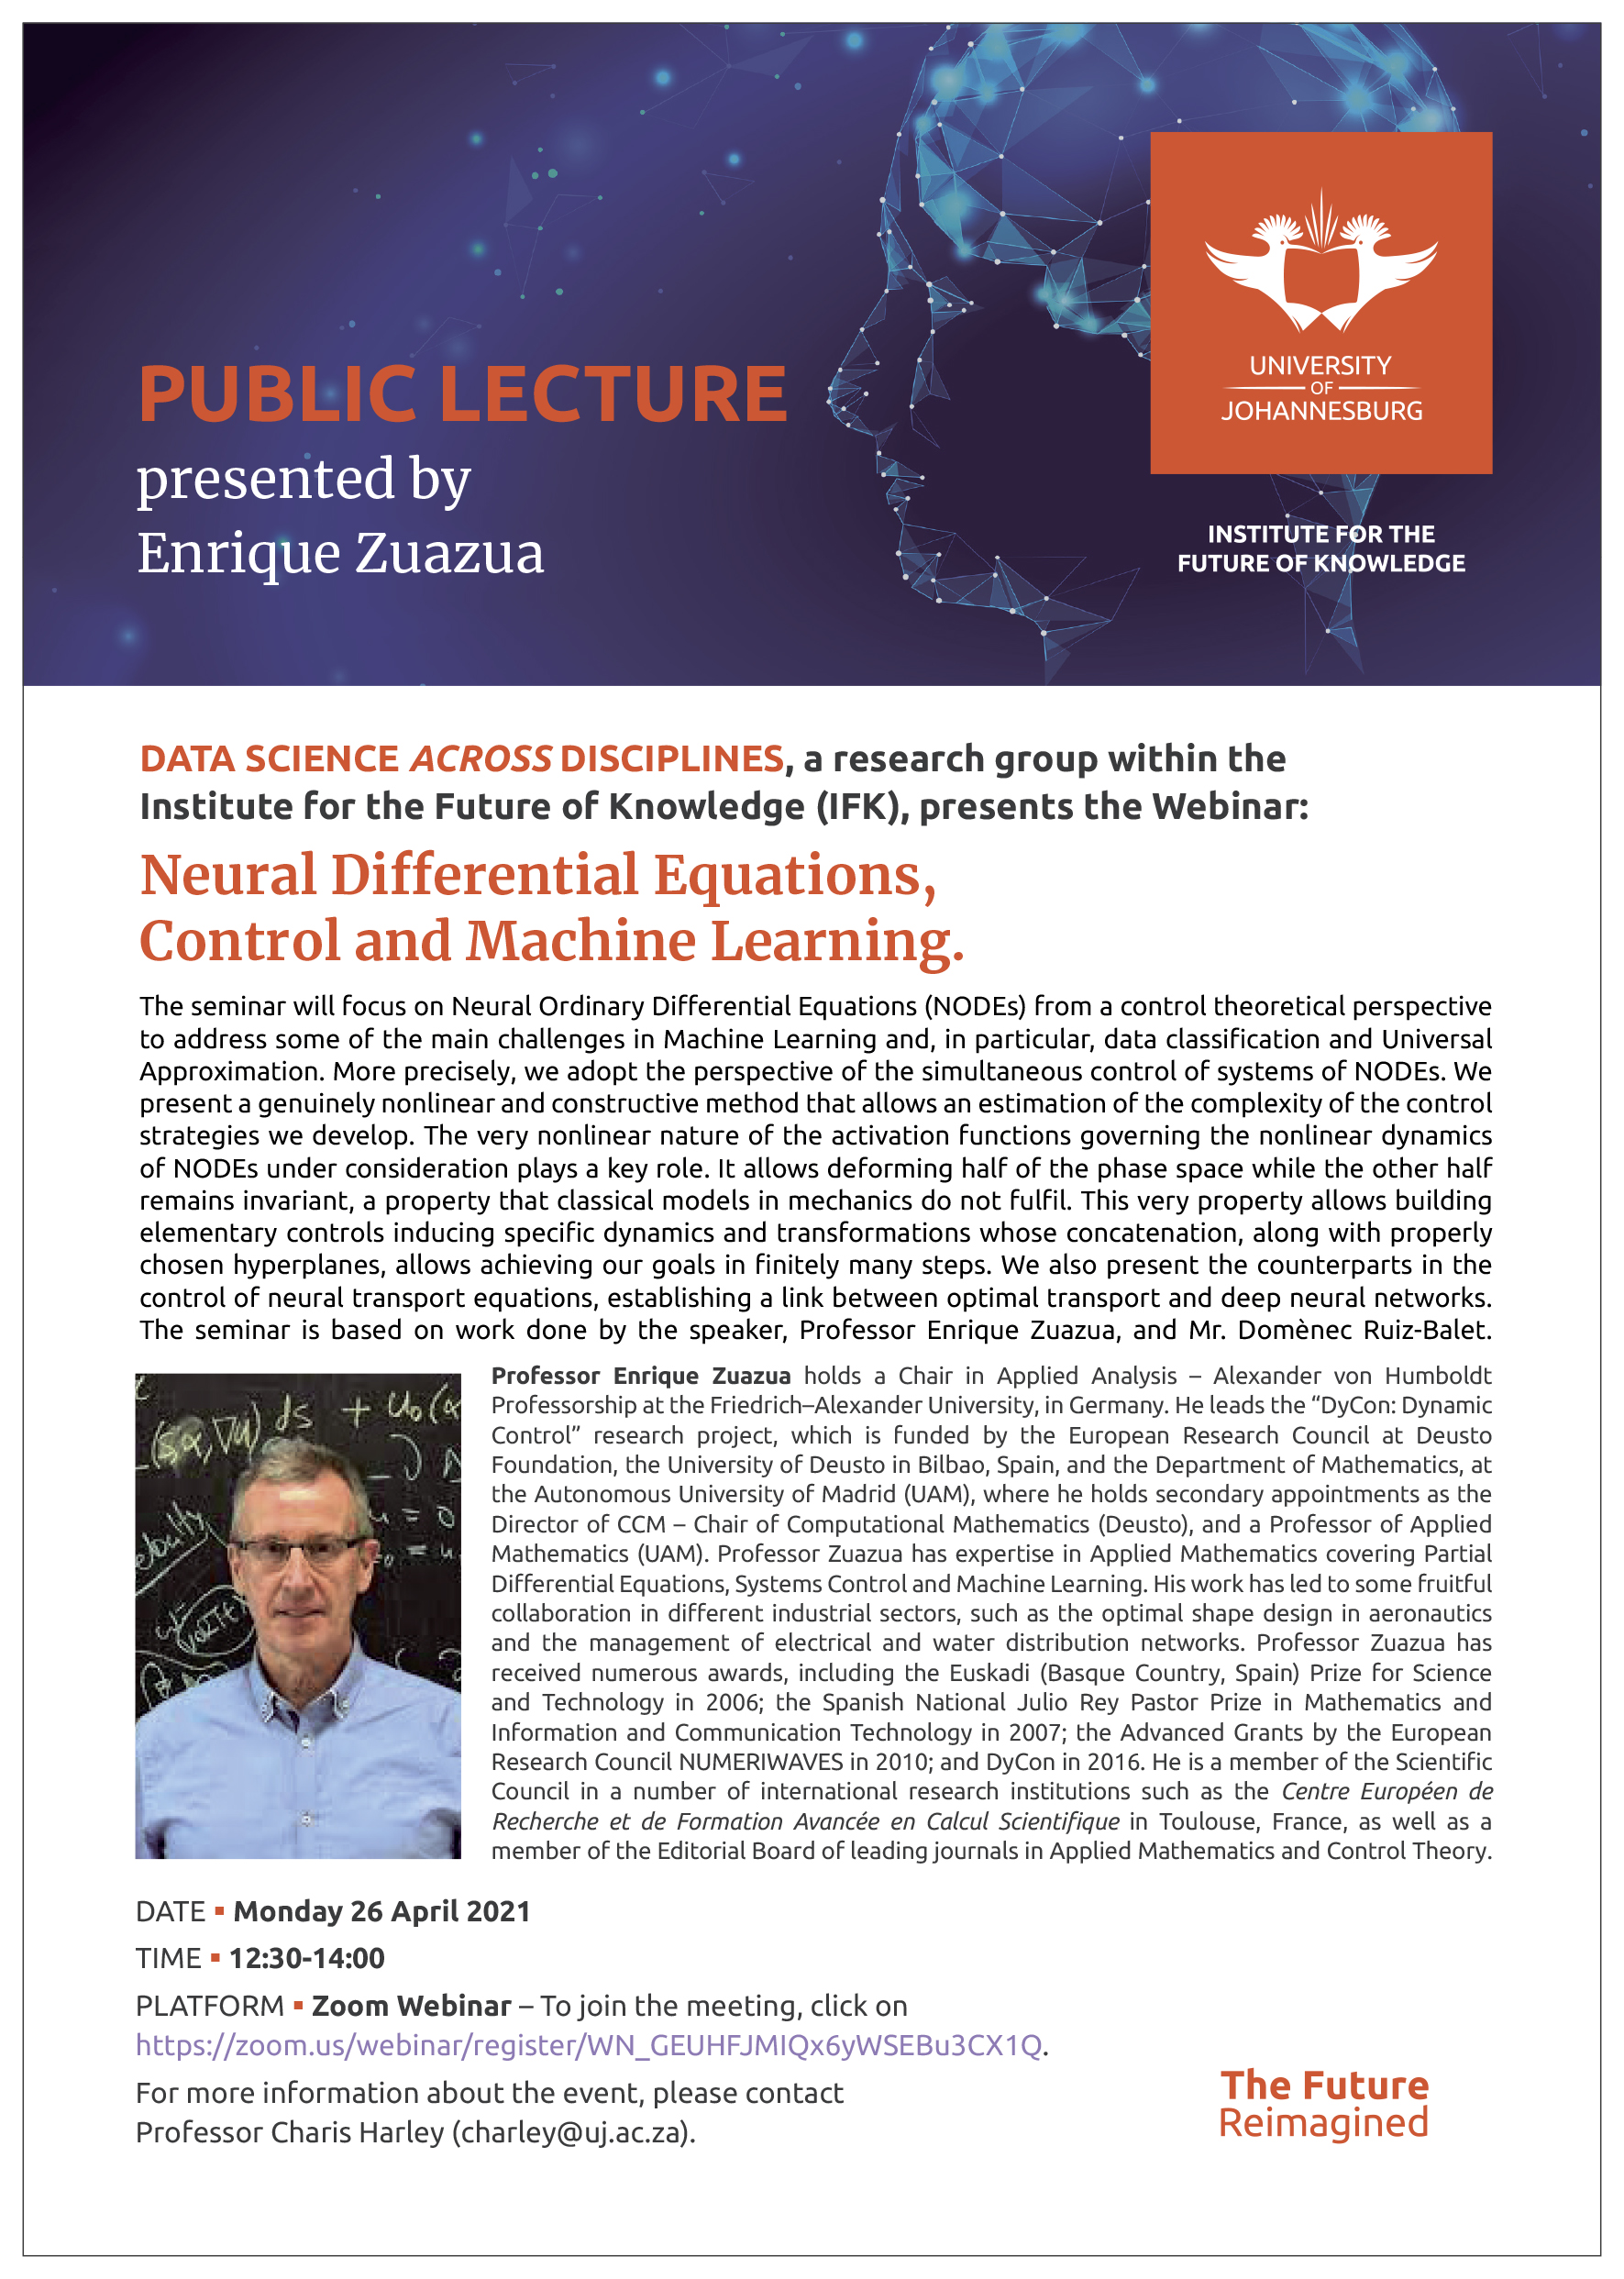 Webinar: Neural Differential Equations, Control and Machine Learning